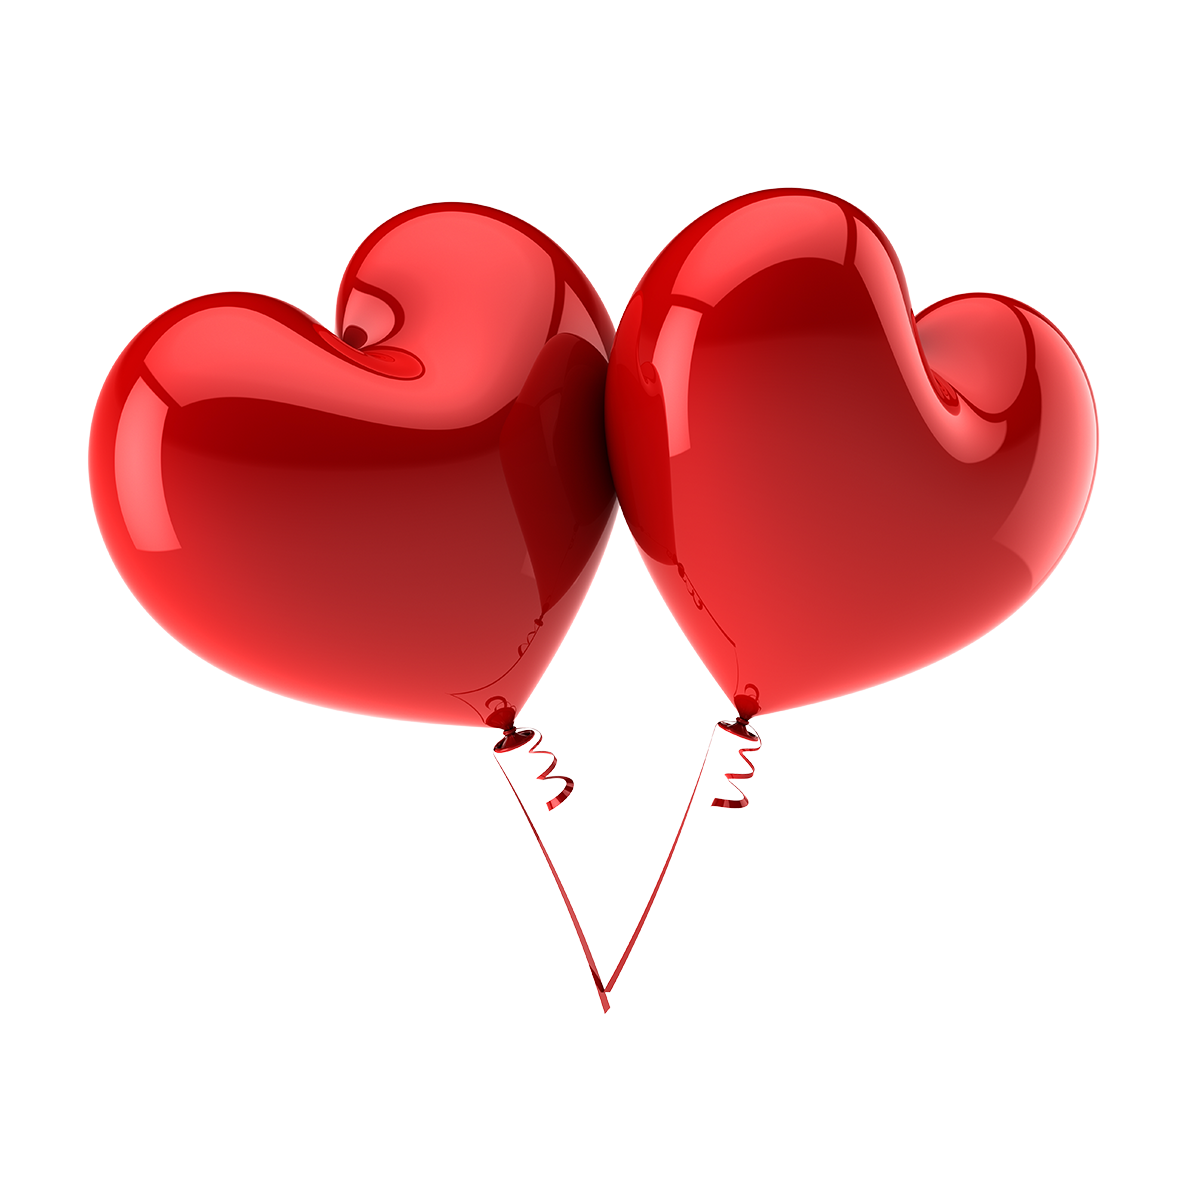 Heart clip art transprent. Hearts clipart hot air balloon